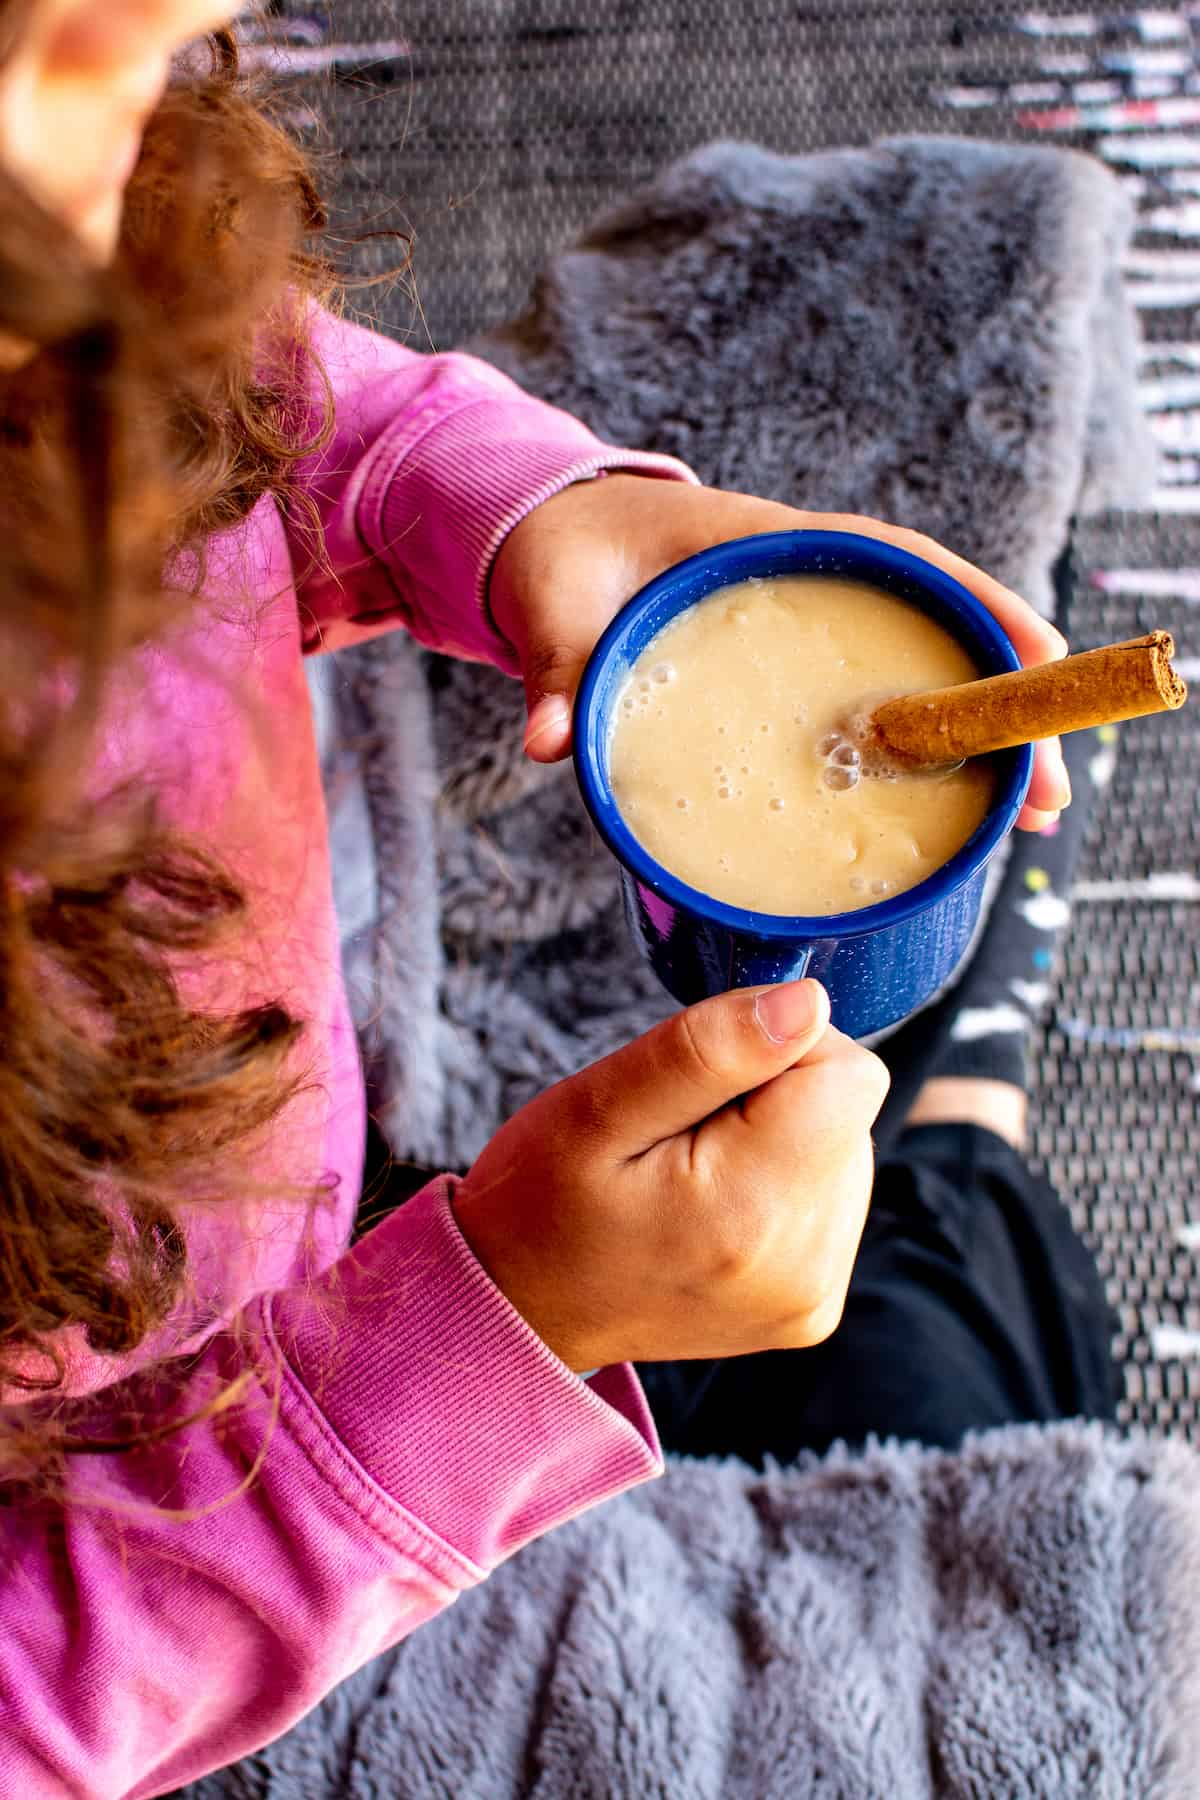 A girl in a pink sweater with a blanket wrapped around her holding a blue mug filled with atole and a cinnamon stick sitting in the mug.